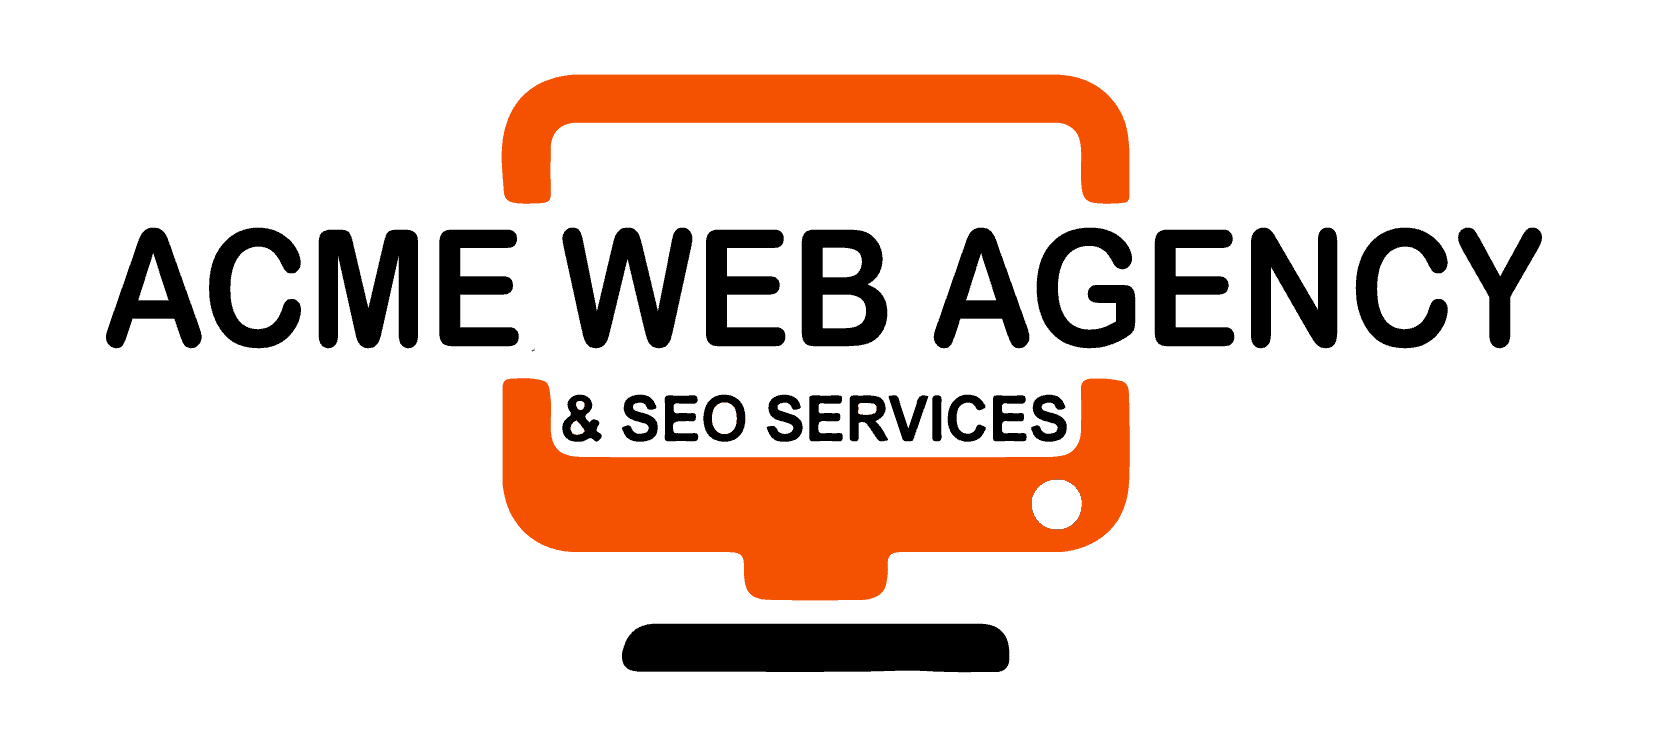 SEO For Small Business Liverpool, SEO Agency Liverpool, Acme